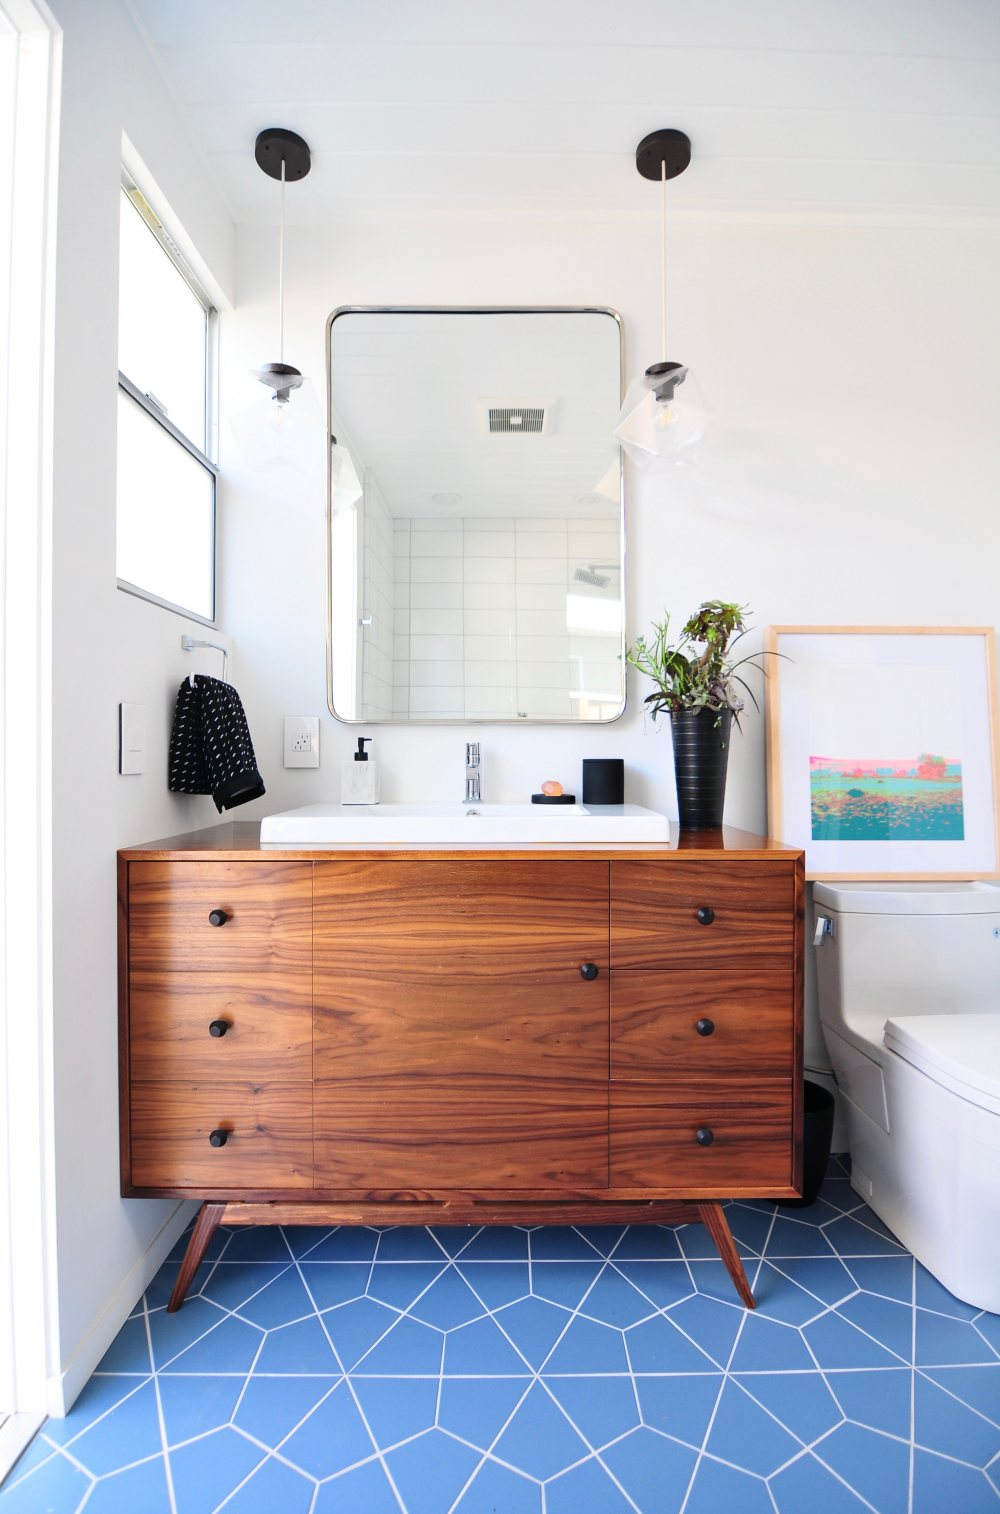 1. Clean Lines - If you're a fan of Mid-Century Modern design you probably appreciate the clean lines and consistency this style offers your home. Paired with natural tones of wood it's the perfect blend of warmth and simplicity.